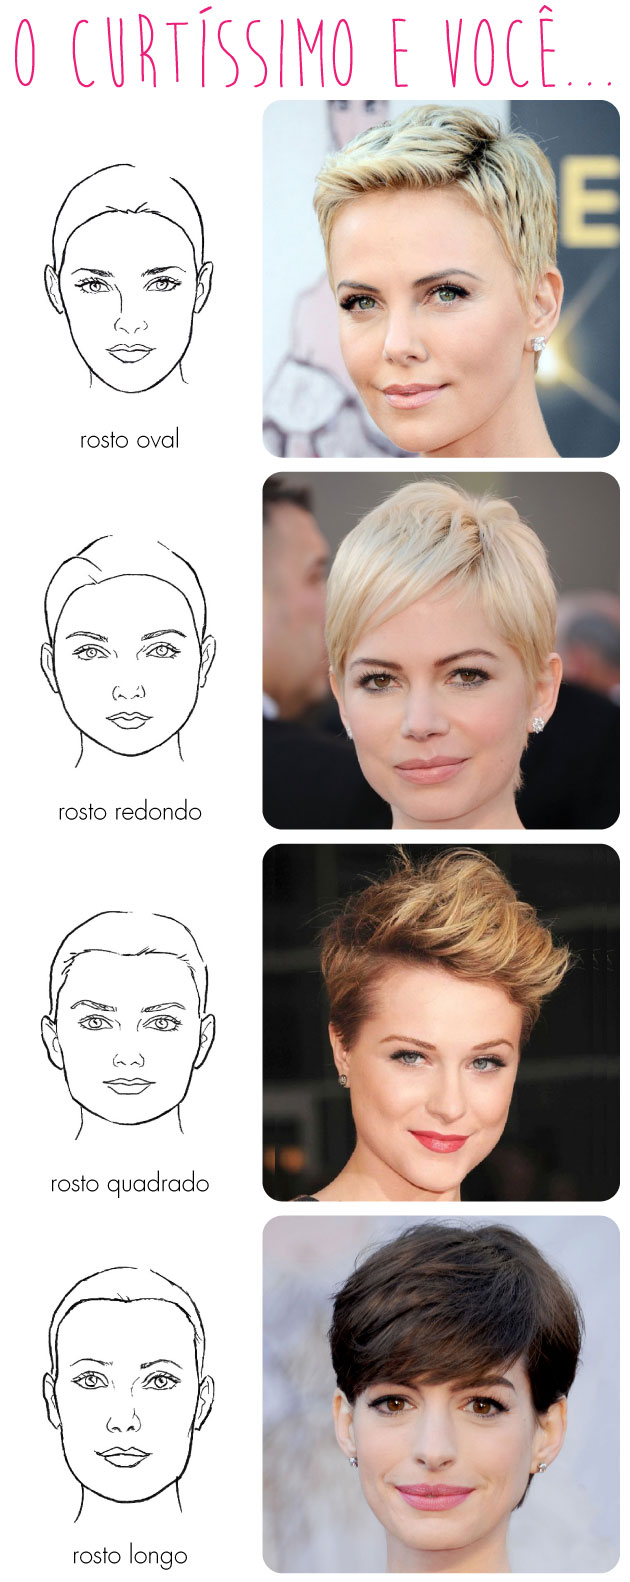 cortes-cabelo-curto-joaozinho-formatos-de-rosto-pixie-cut-face-shapes-michelle-williams-charlize-theron-anne-hathaway-evan-rachel-wood